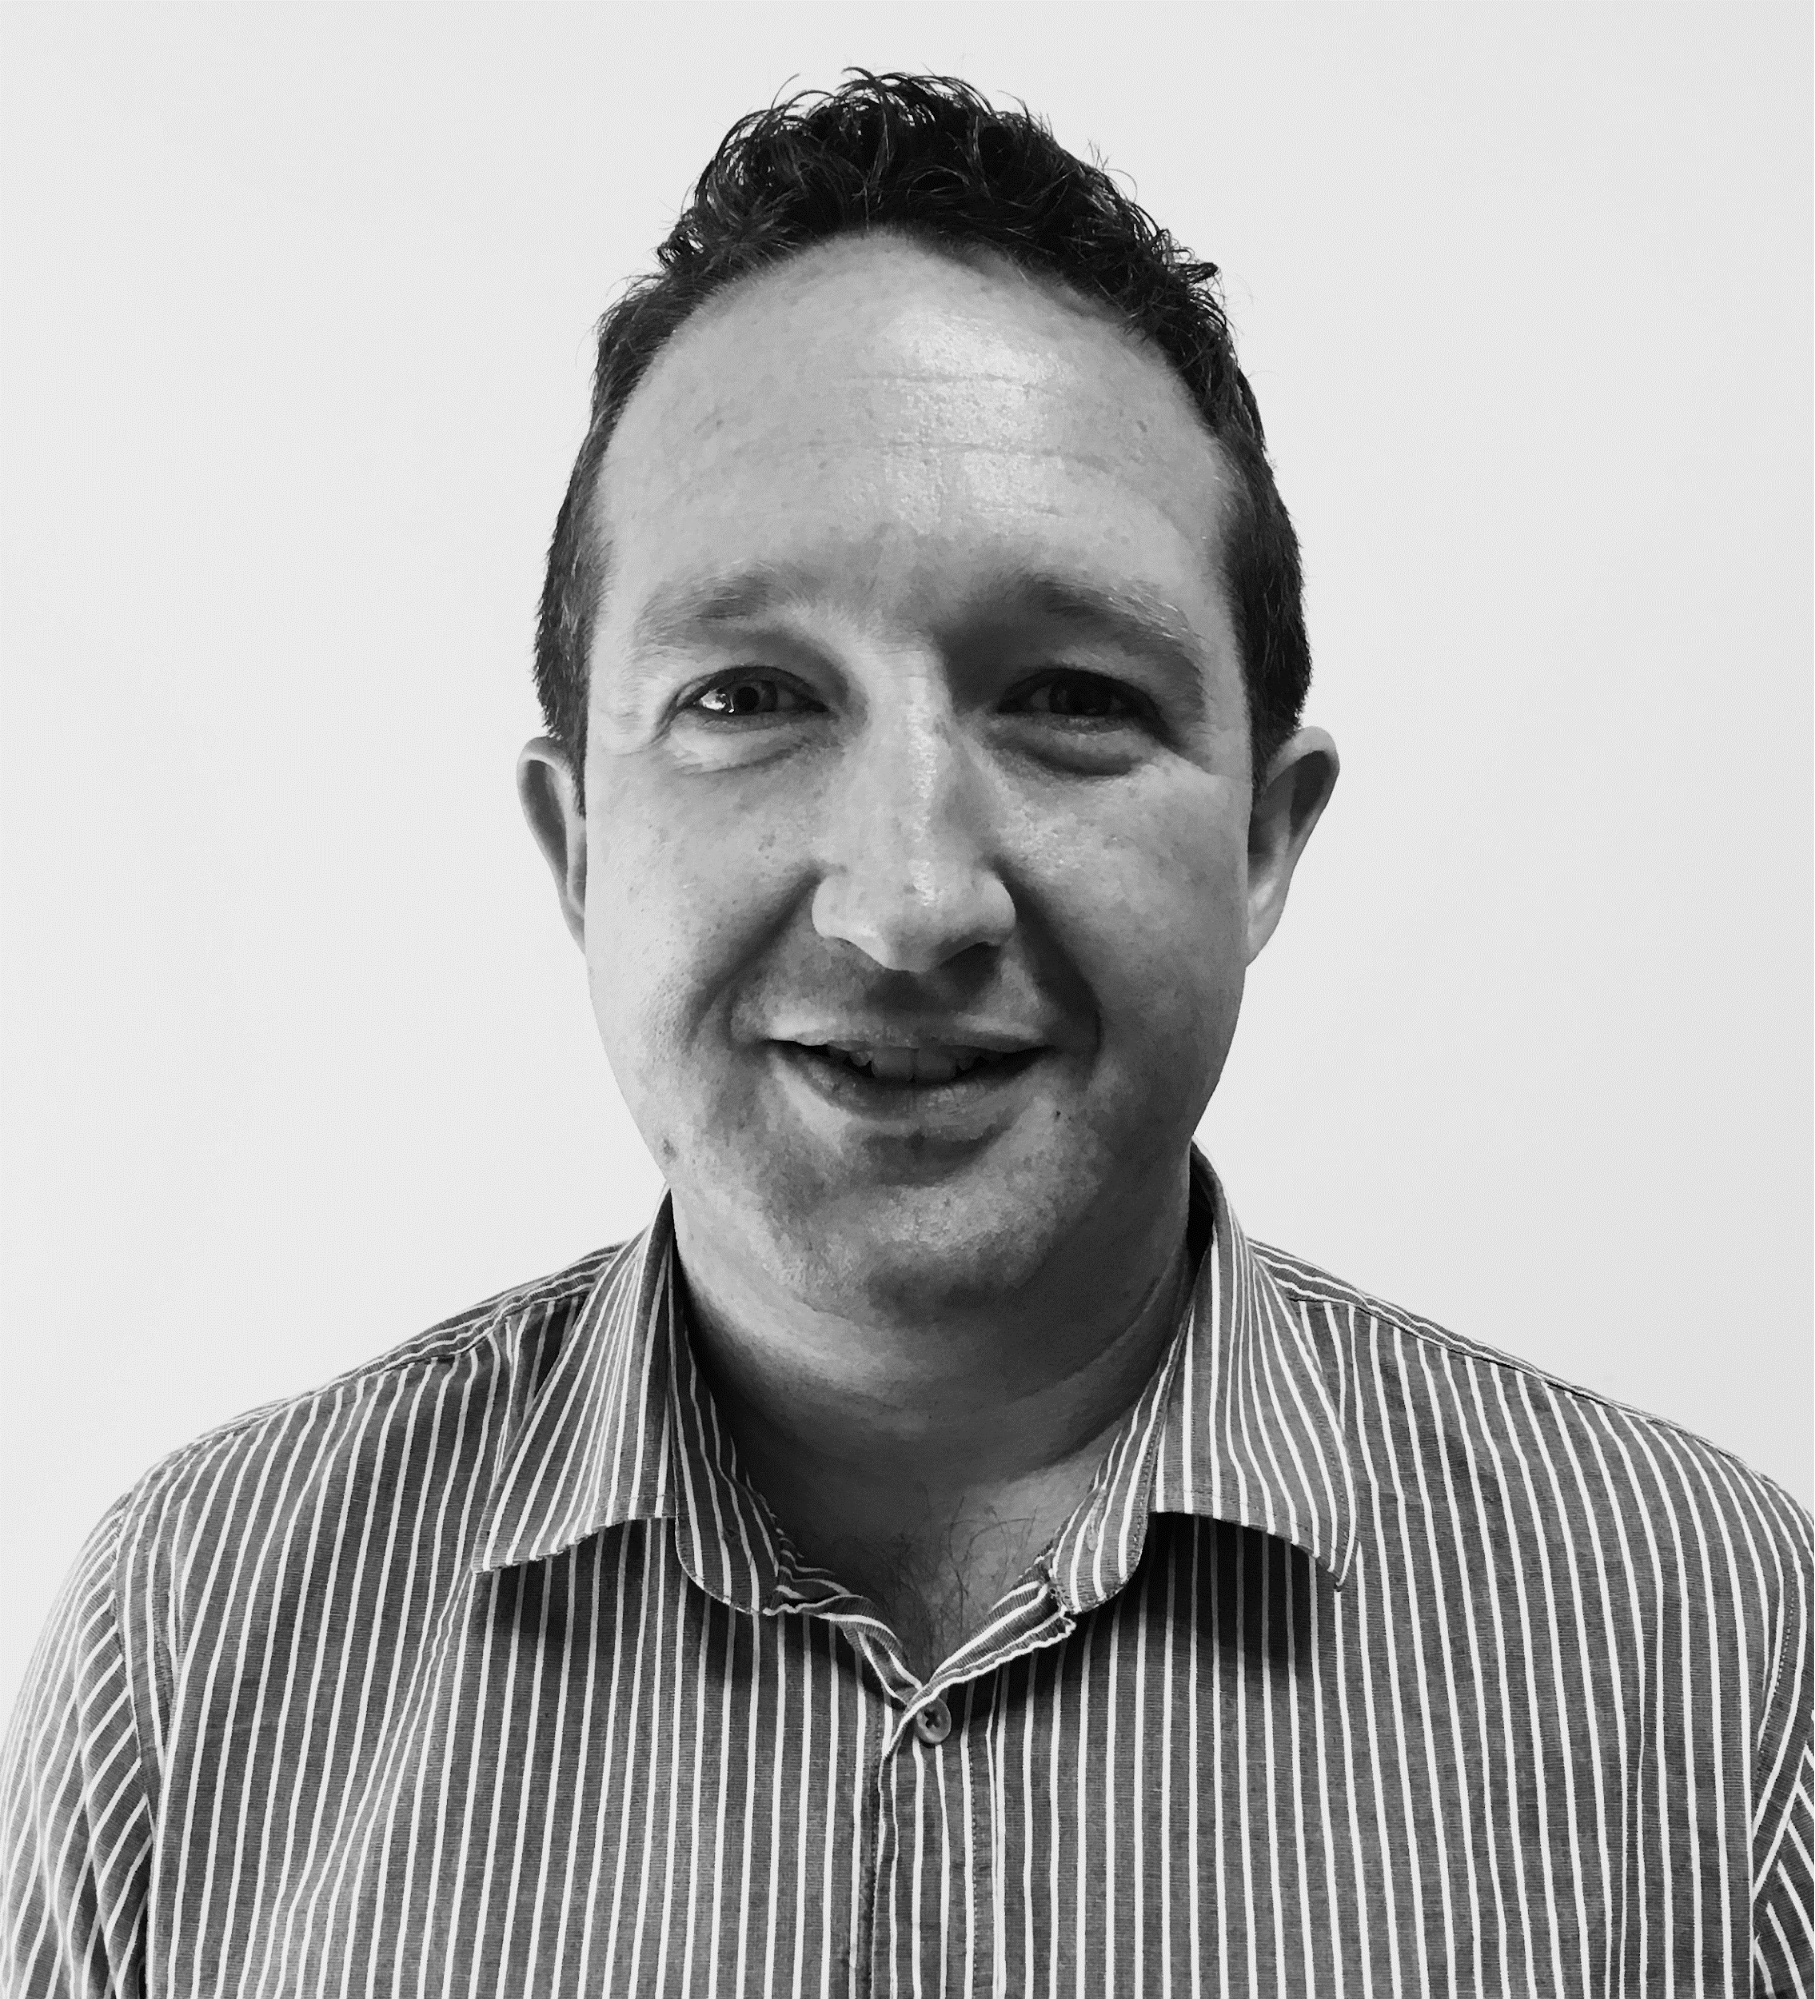 Andy Swarbrick BSc, MA